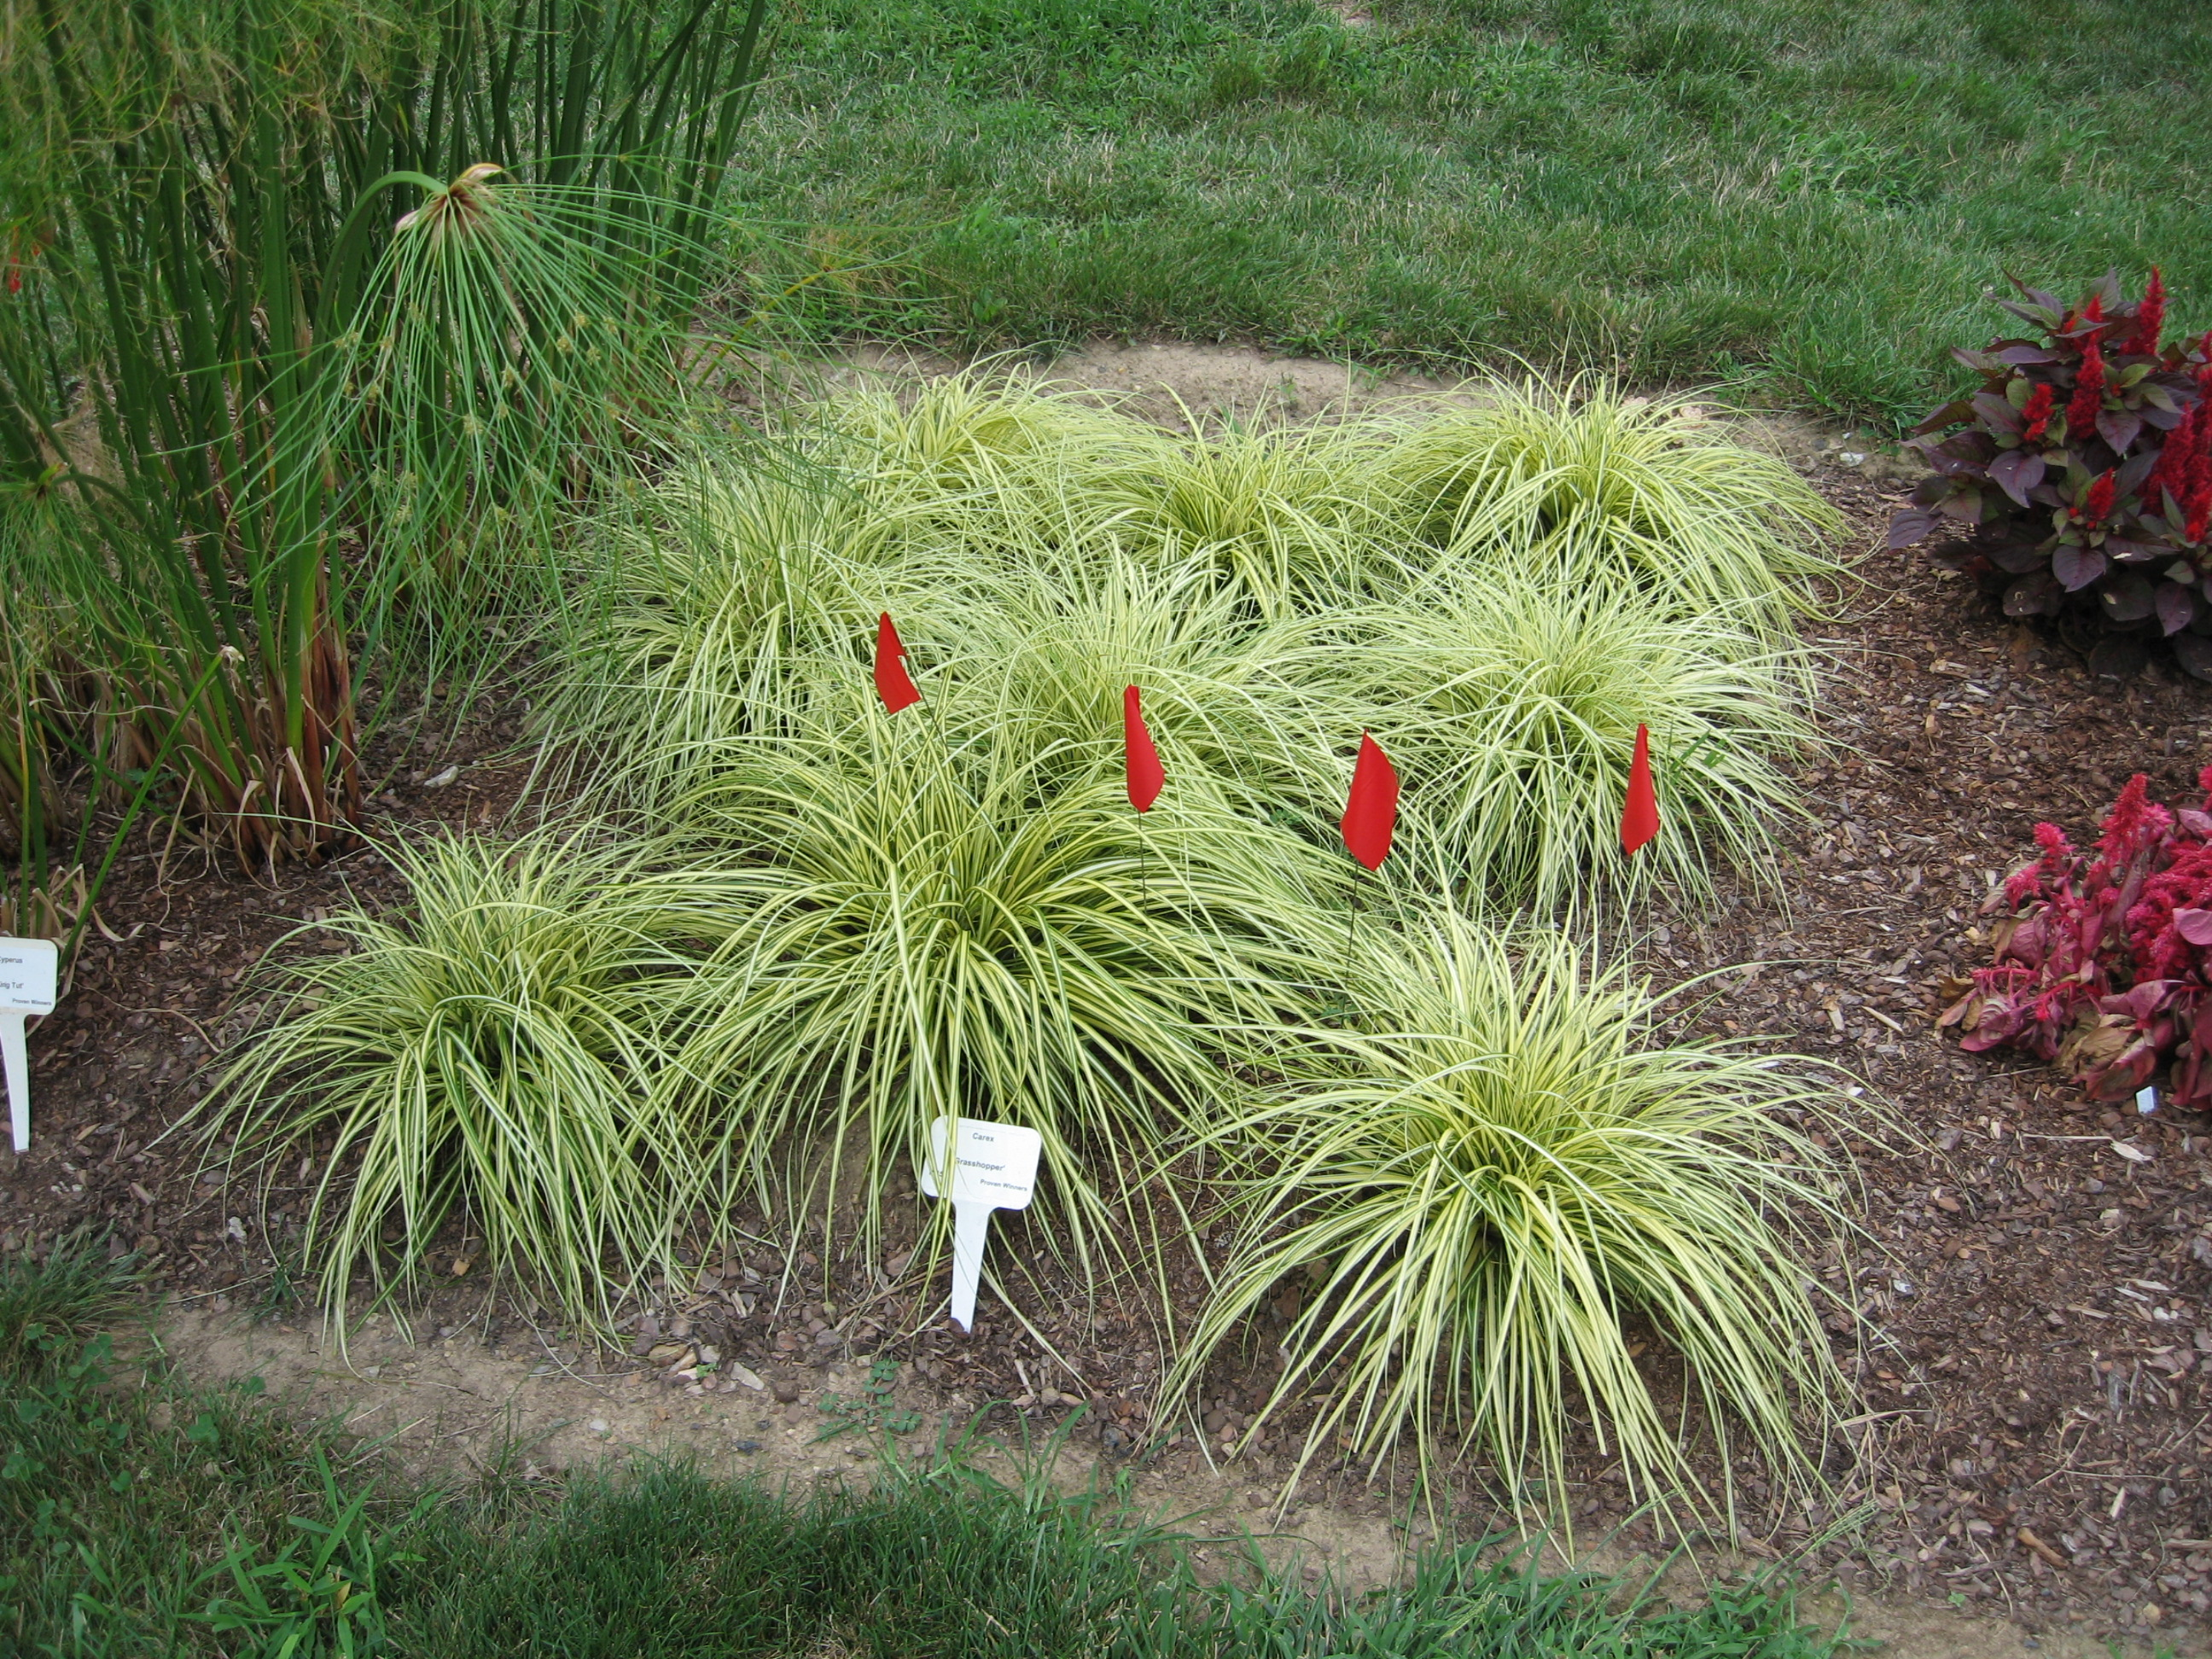 Landscape grasses plus types of ornamental grass plus where to buy tall grass plus long decorative grass